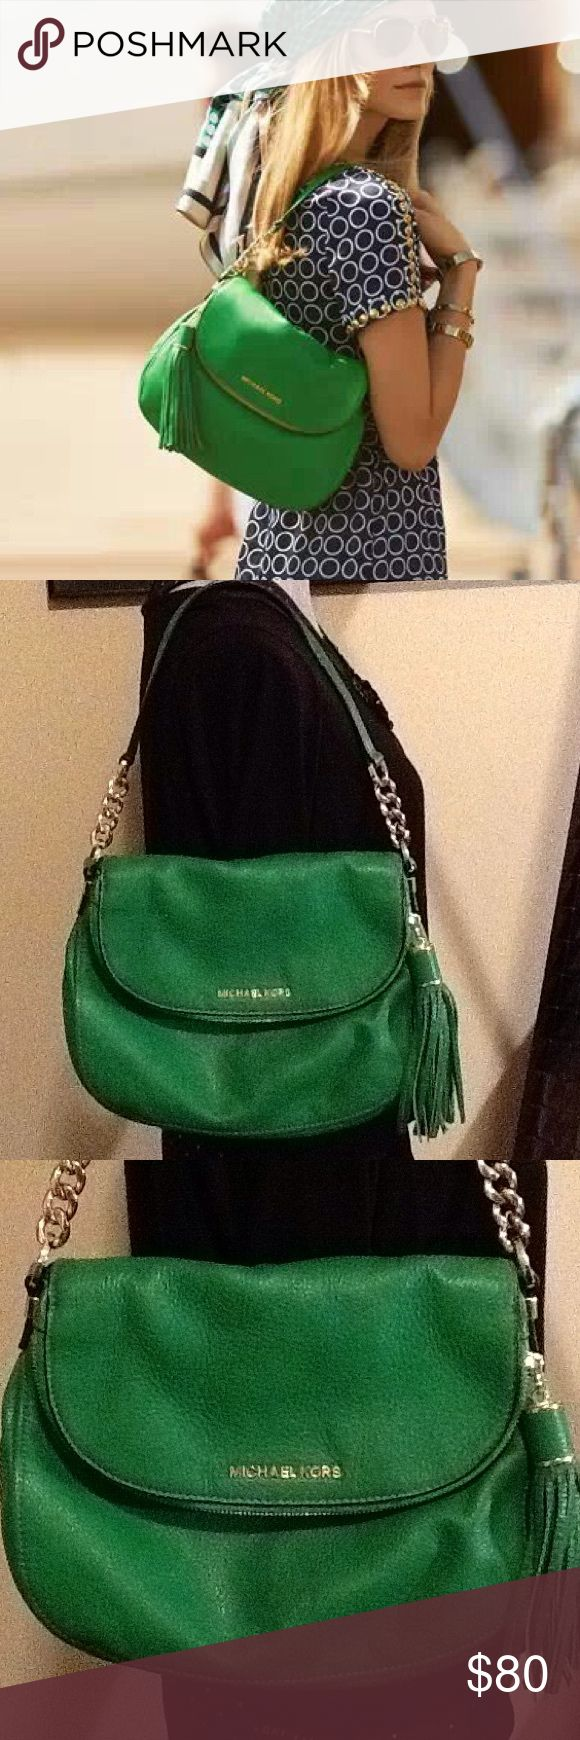 Michael Kors Kelly green shoulder bag Great used condition, very little wear as shown in pictures. Purchased from Norstrom's . Kelly green with gold zipper and logo. 11 inches wide and 9 inches high. So many compartments! Michael Kors Bags Shoulder Bags